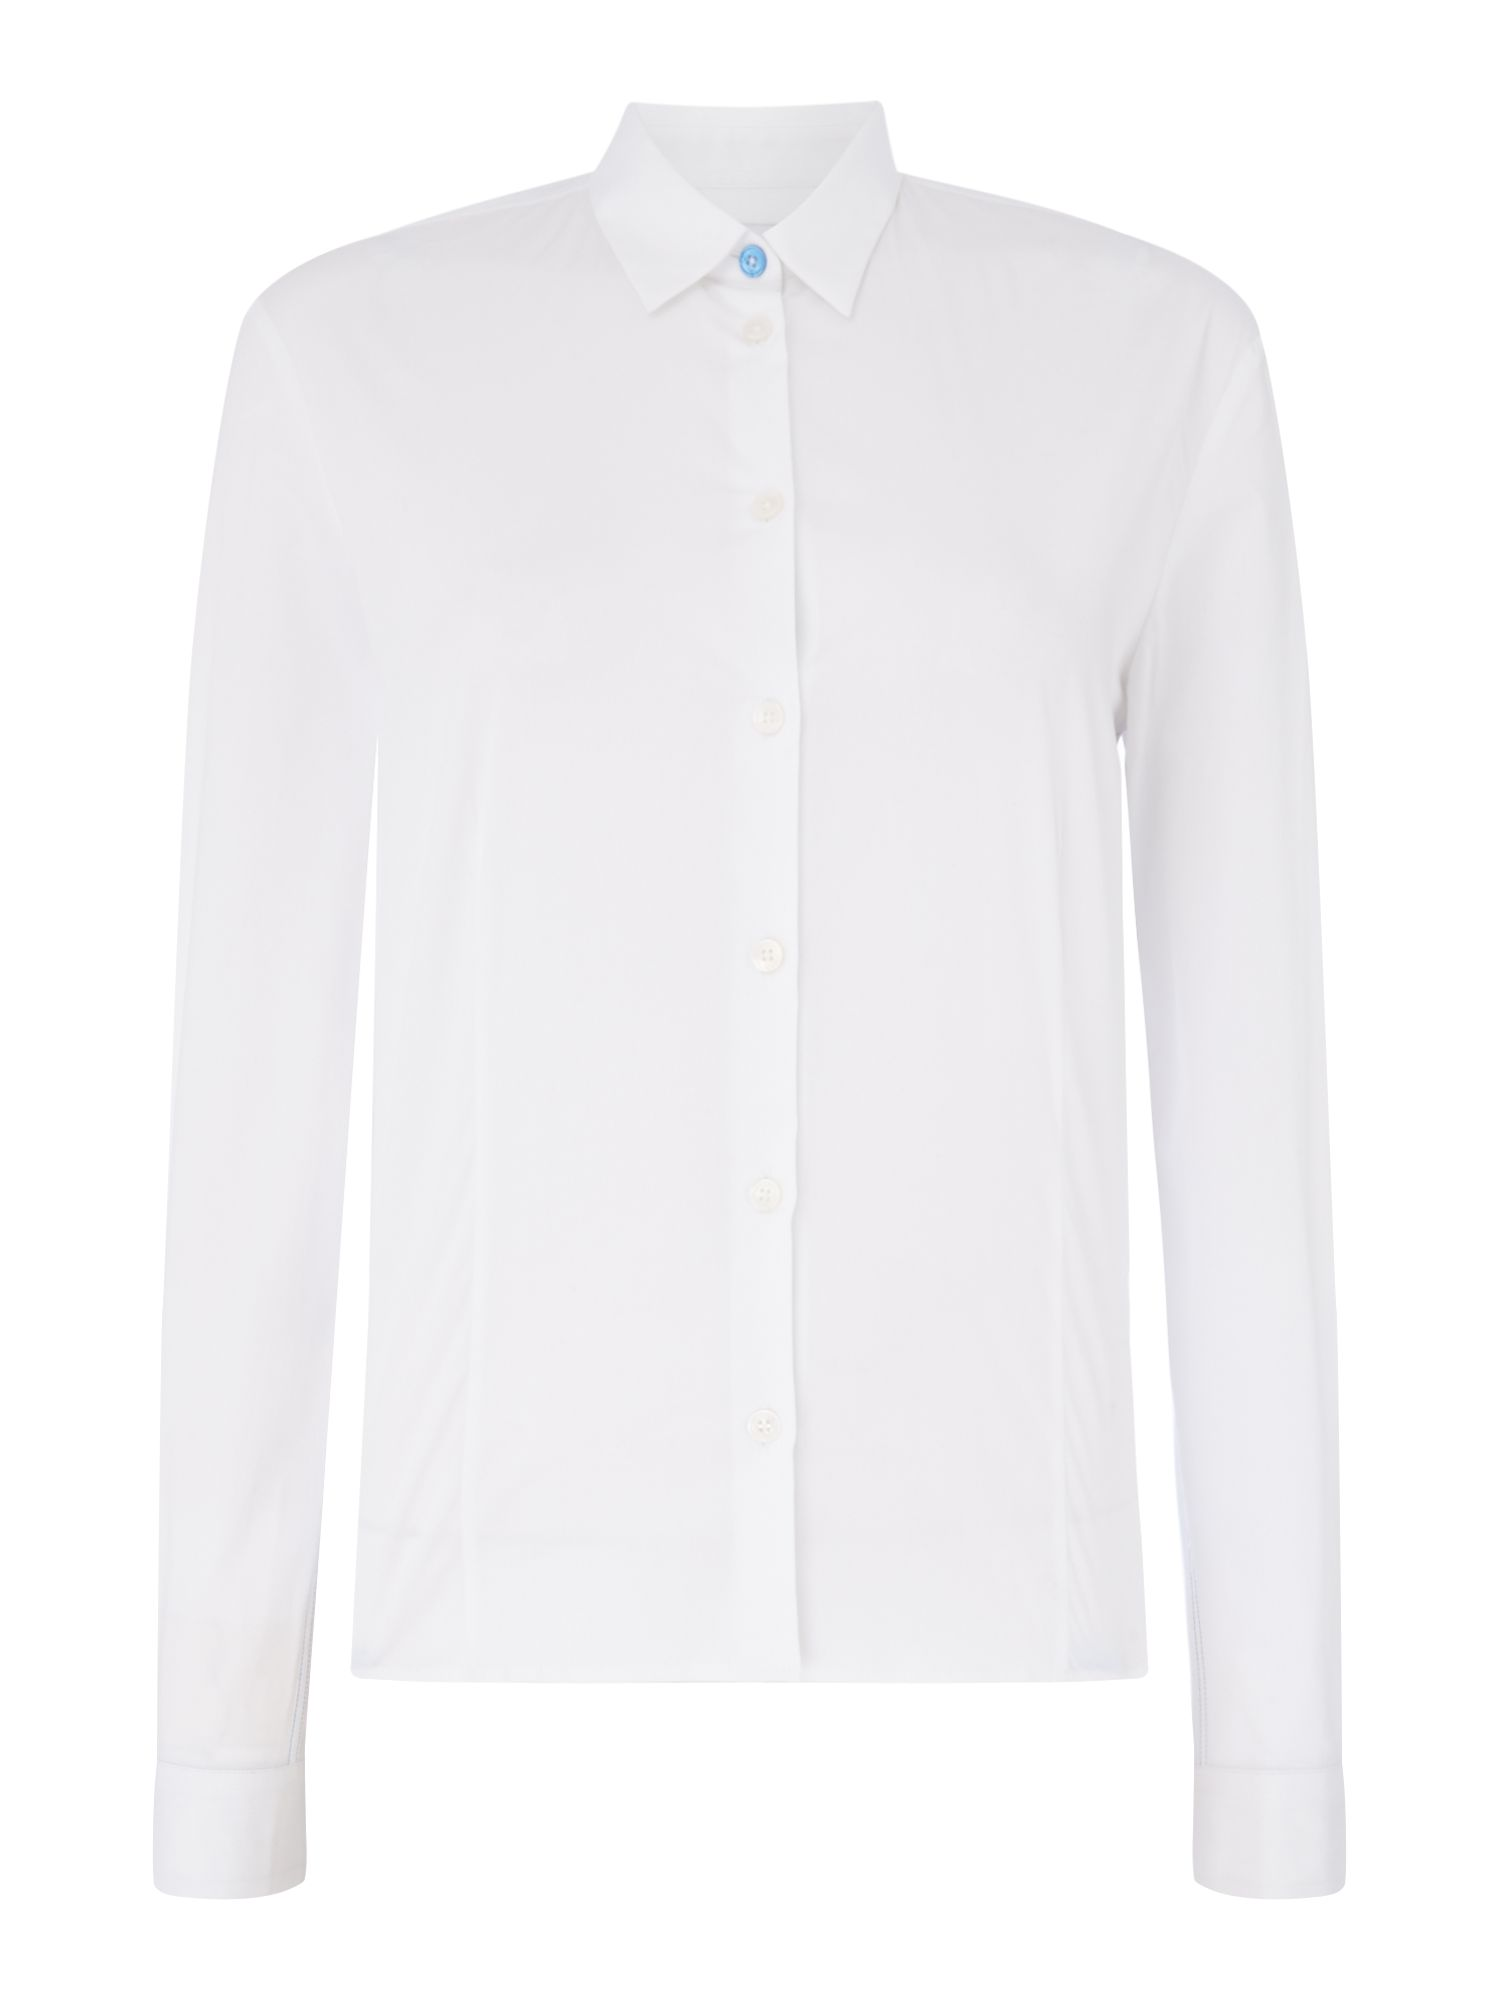 PS By Paul Smith Cat cuff detail fitted shirt, White